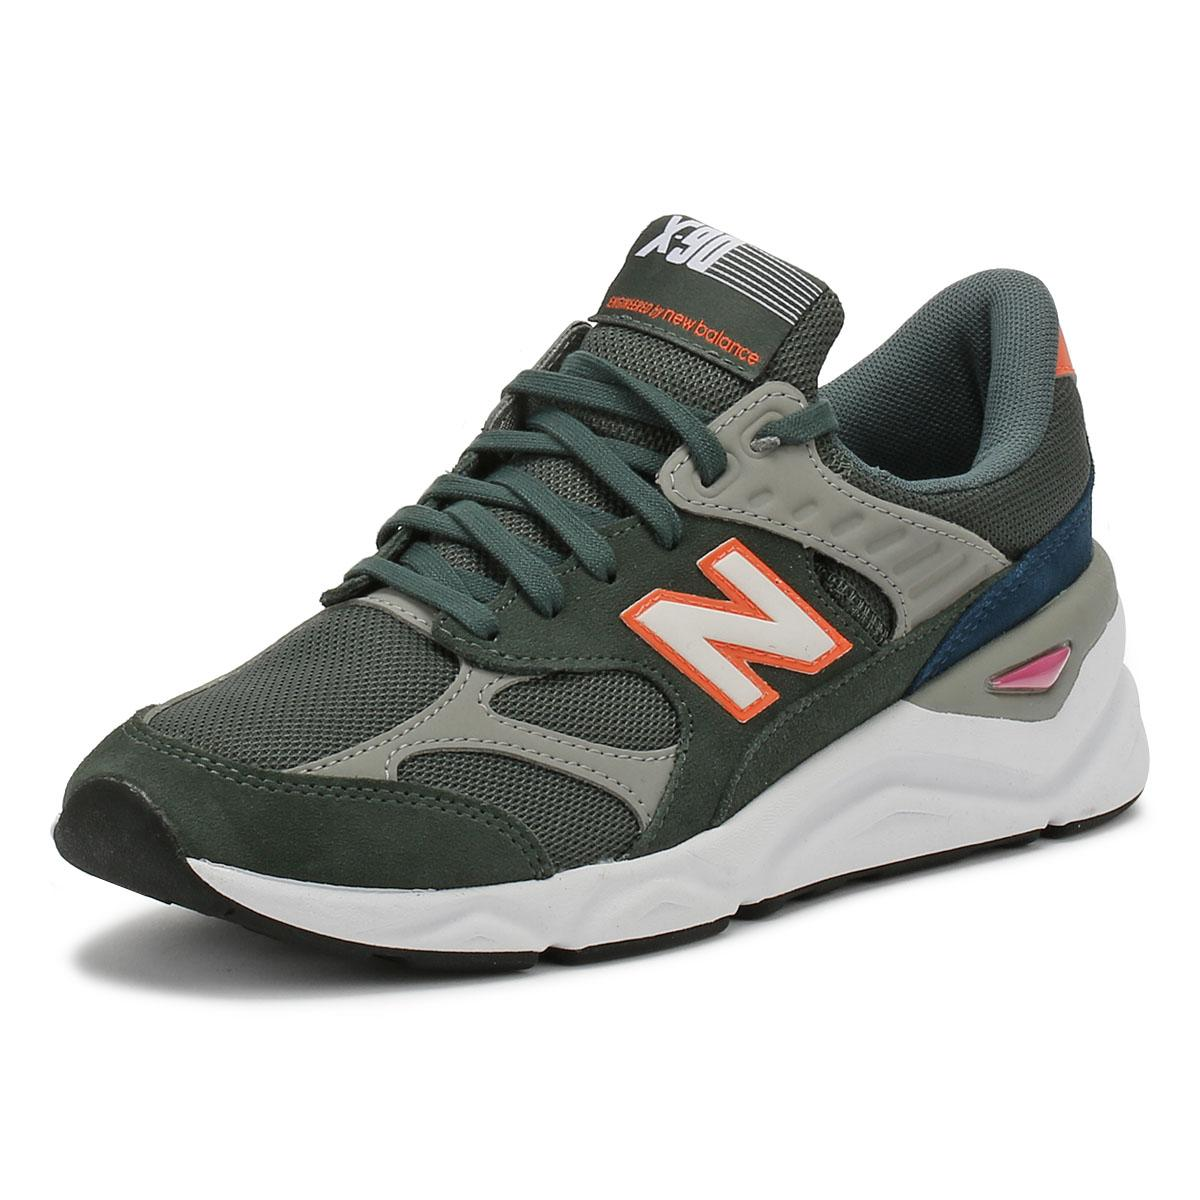 reputable site c28d6 e34cc new-balance-Multi-Coloured-Msx90-Mens-Green-Orange-Trainers.jpeg